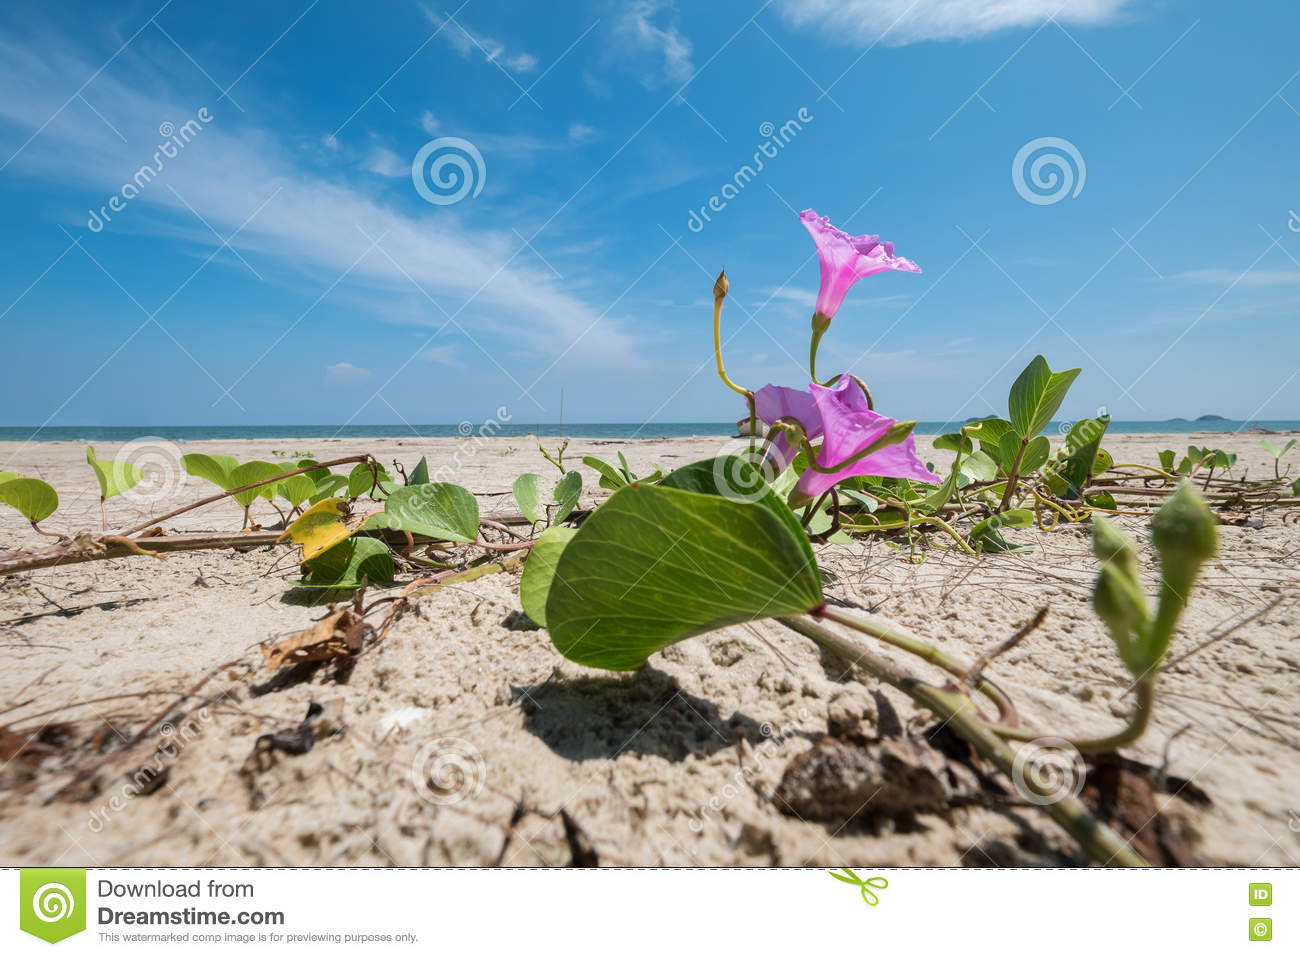 Mall pupil flowers on a beach with sea